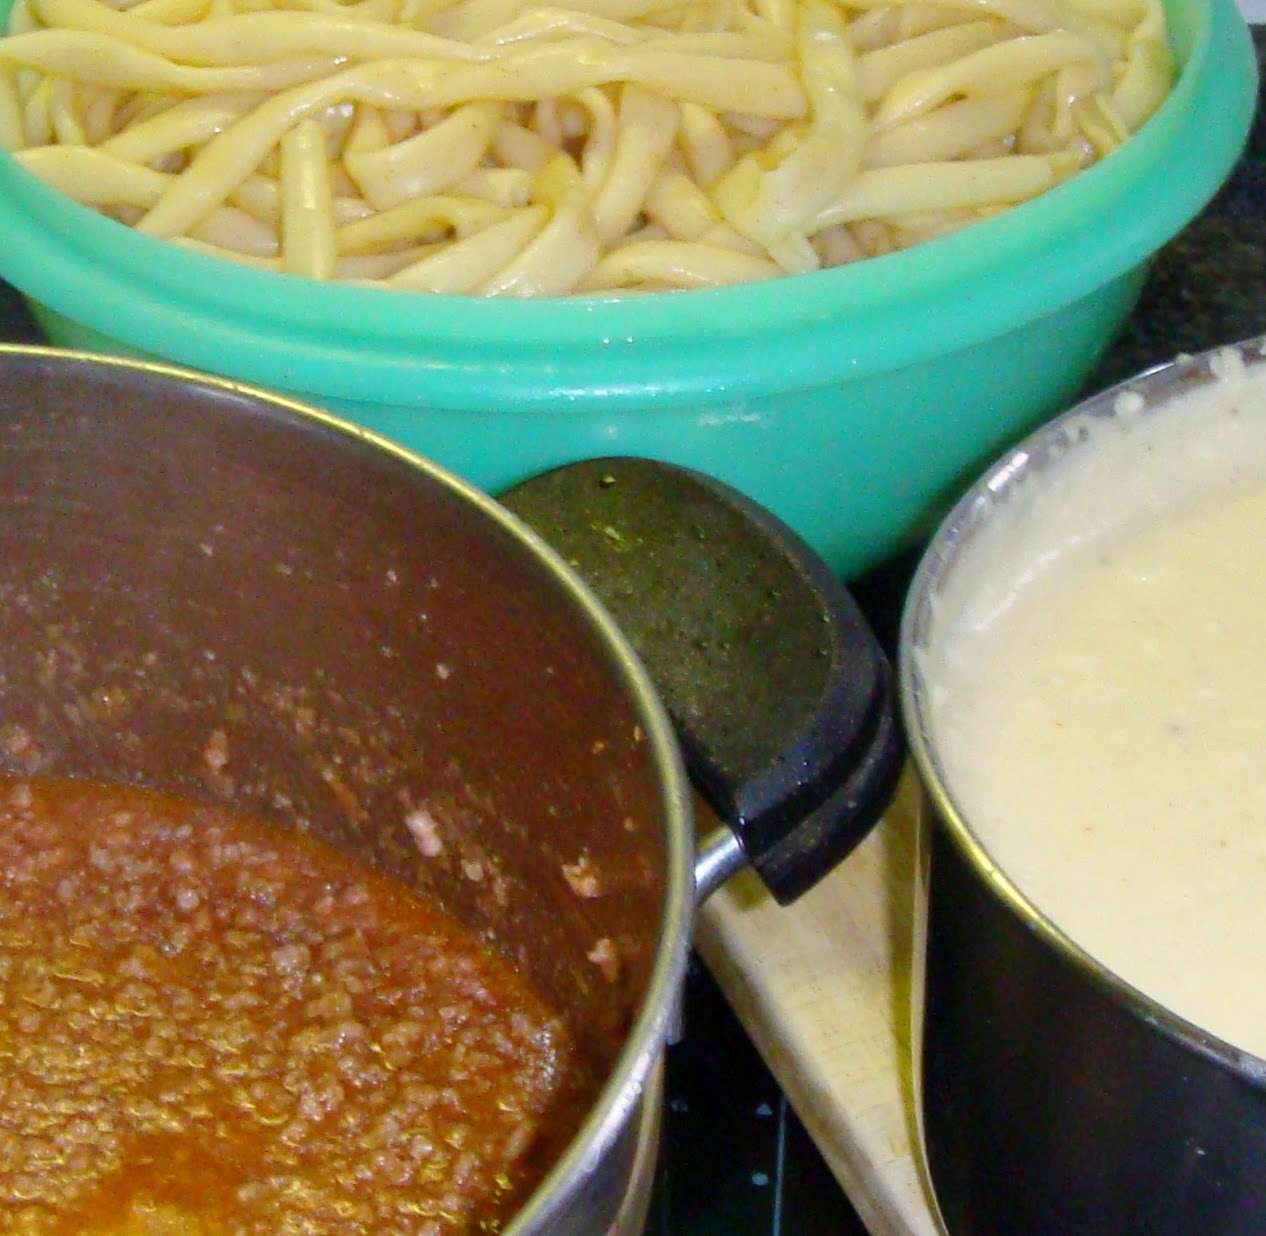 The three parts of pastitsio